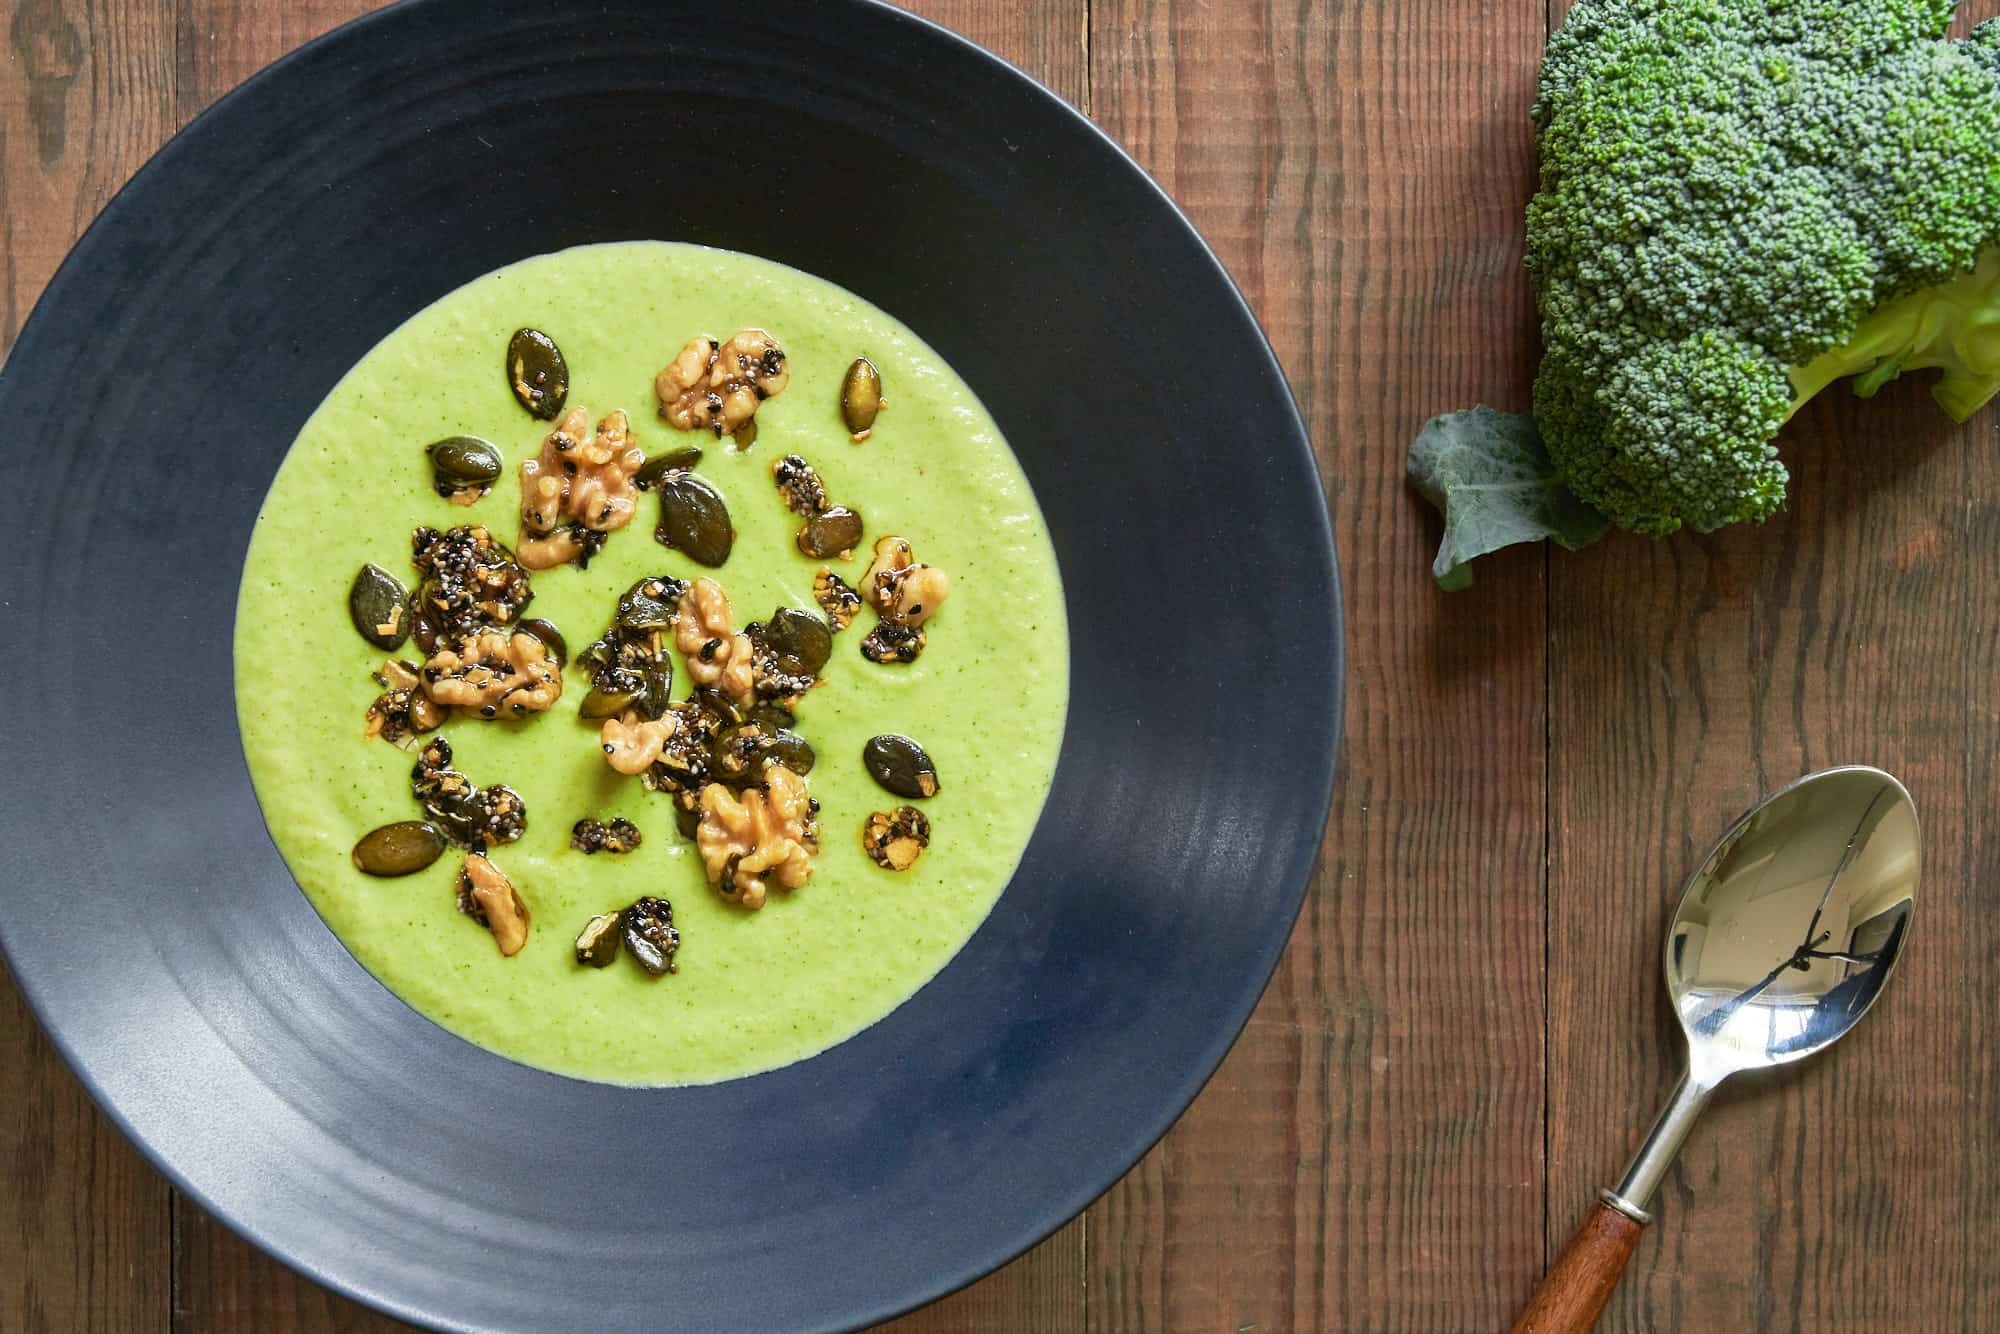 This Broccoli Cheese Soup is so flavorful and creamy, no one will believe it's plant-based.